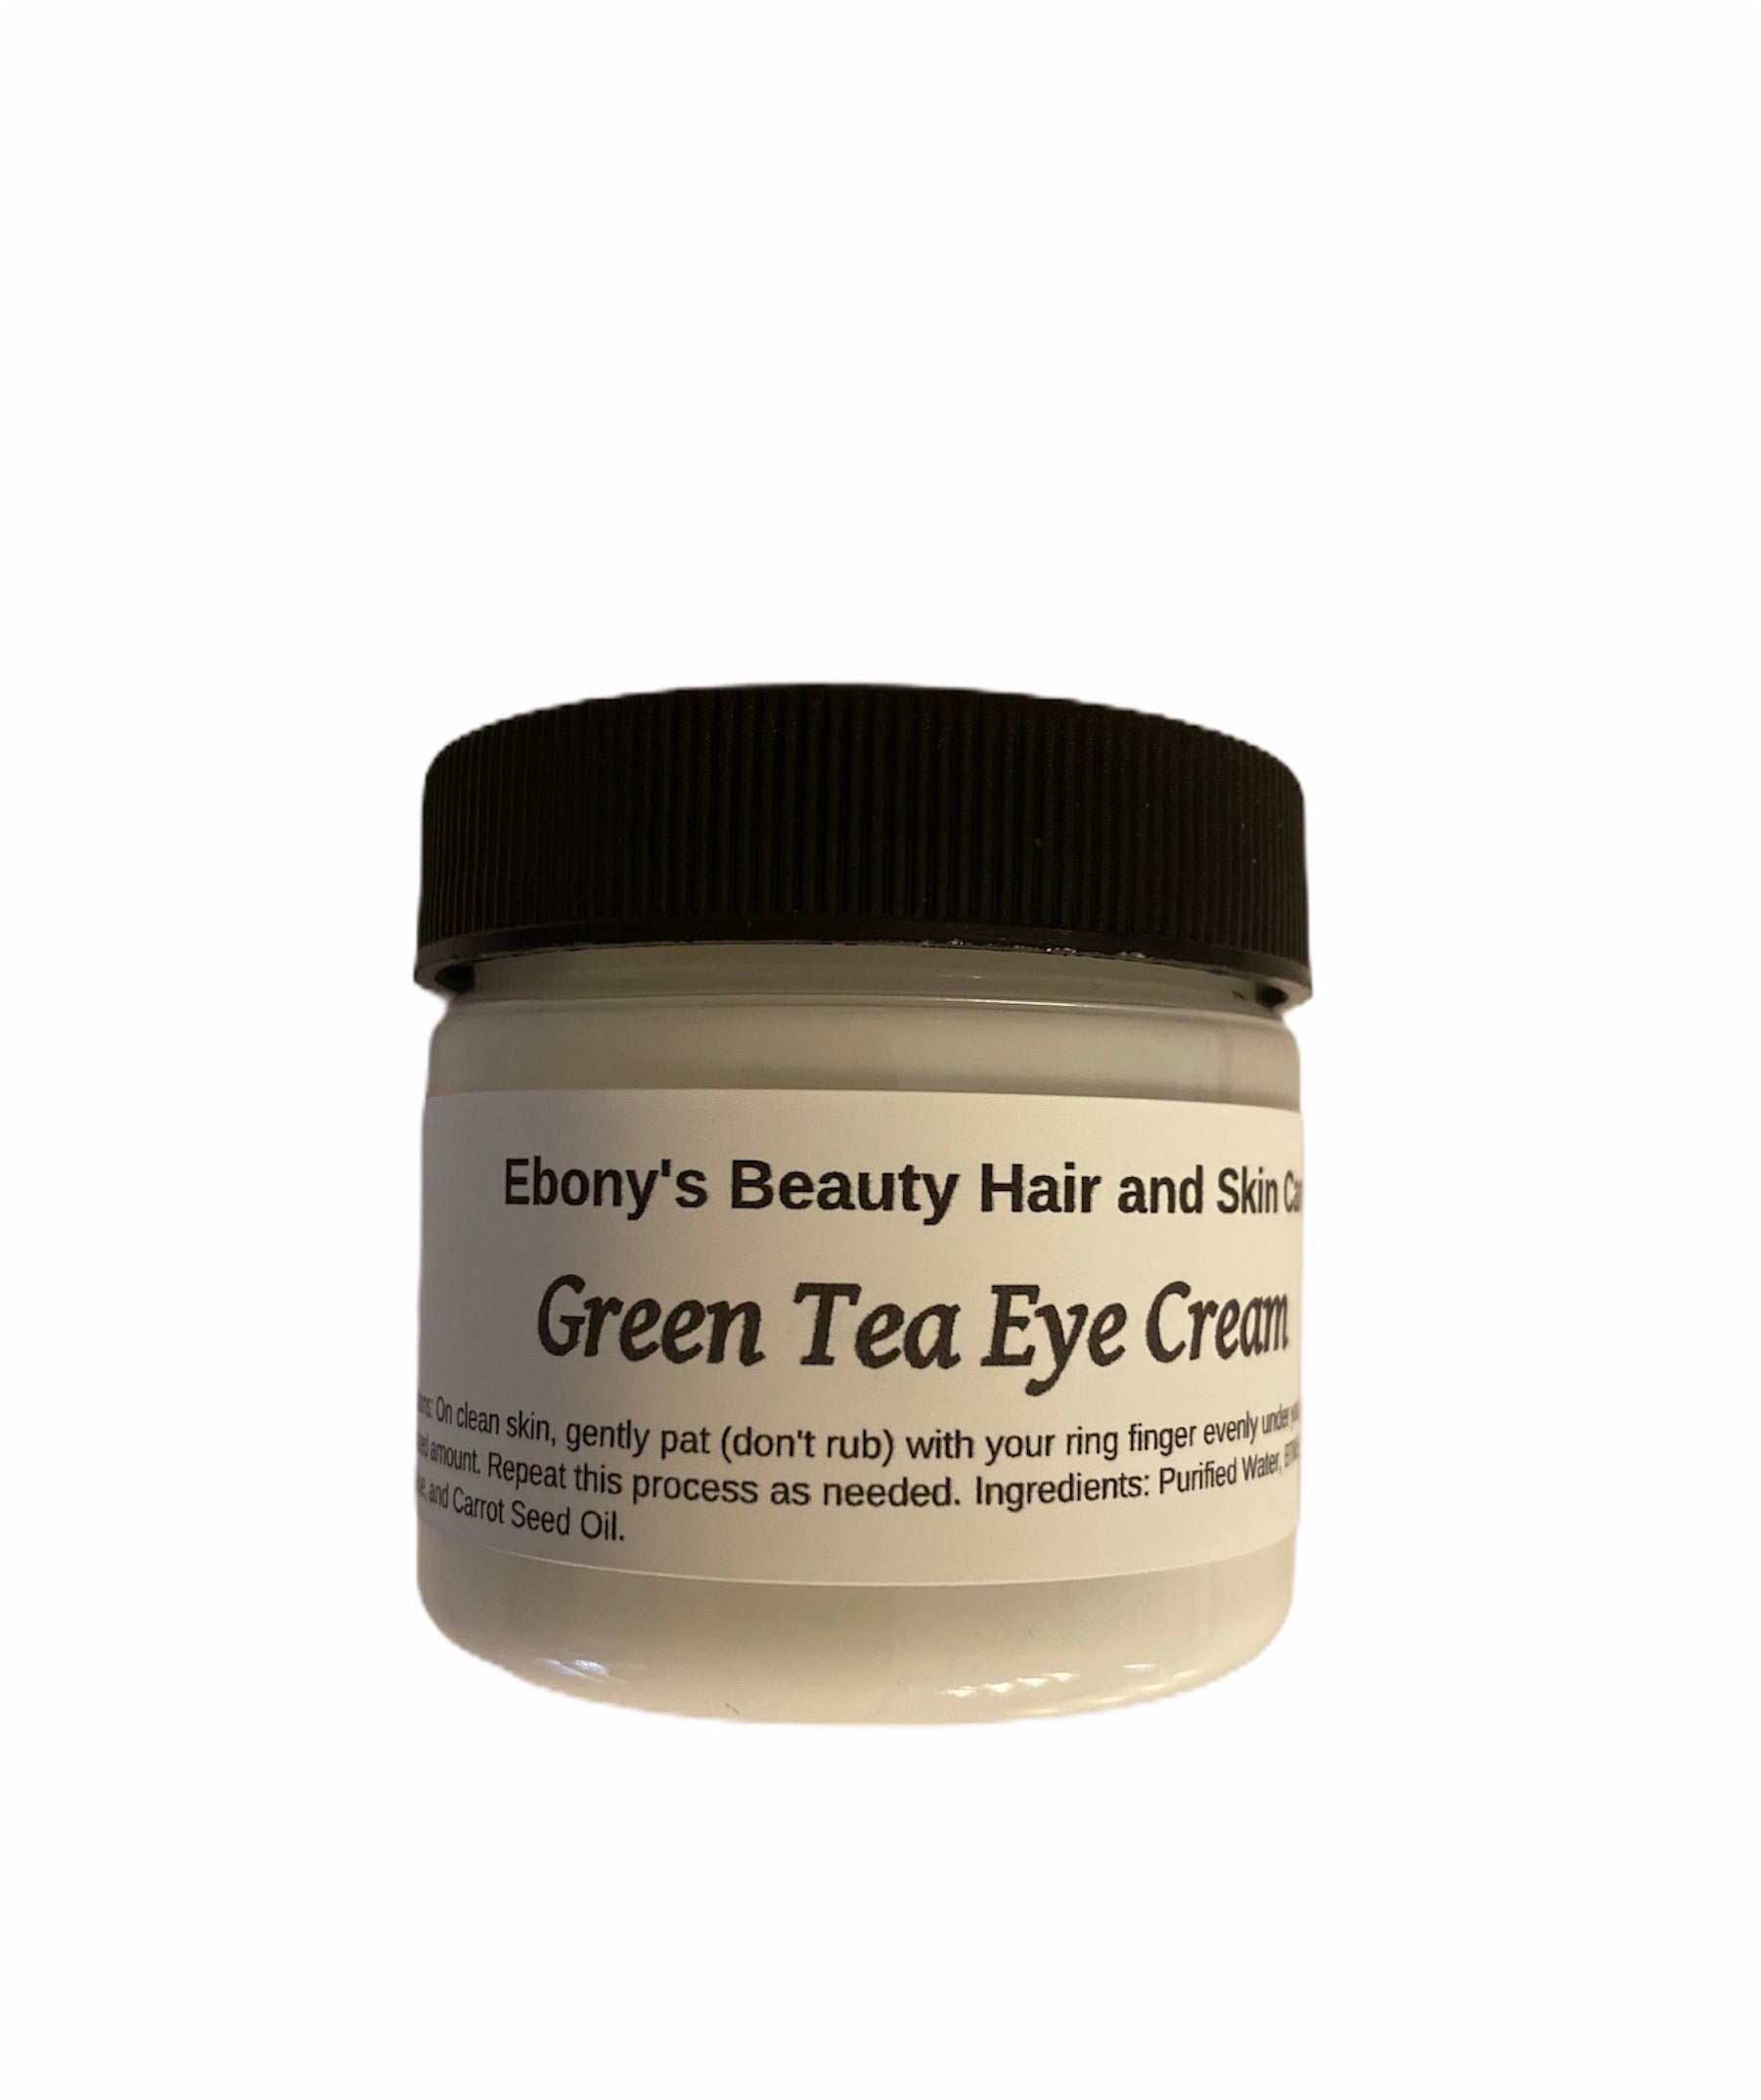 Green Tea Eye Cream - Ebony's Beauty Hair and Skin Care LLC